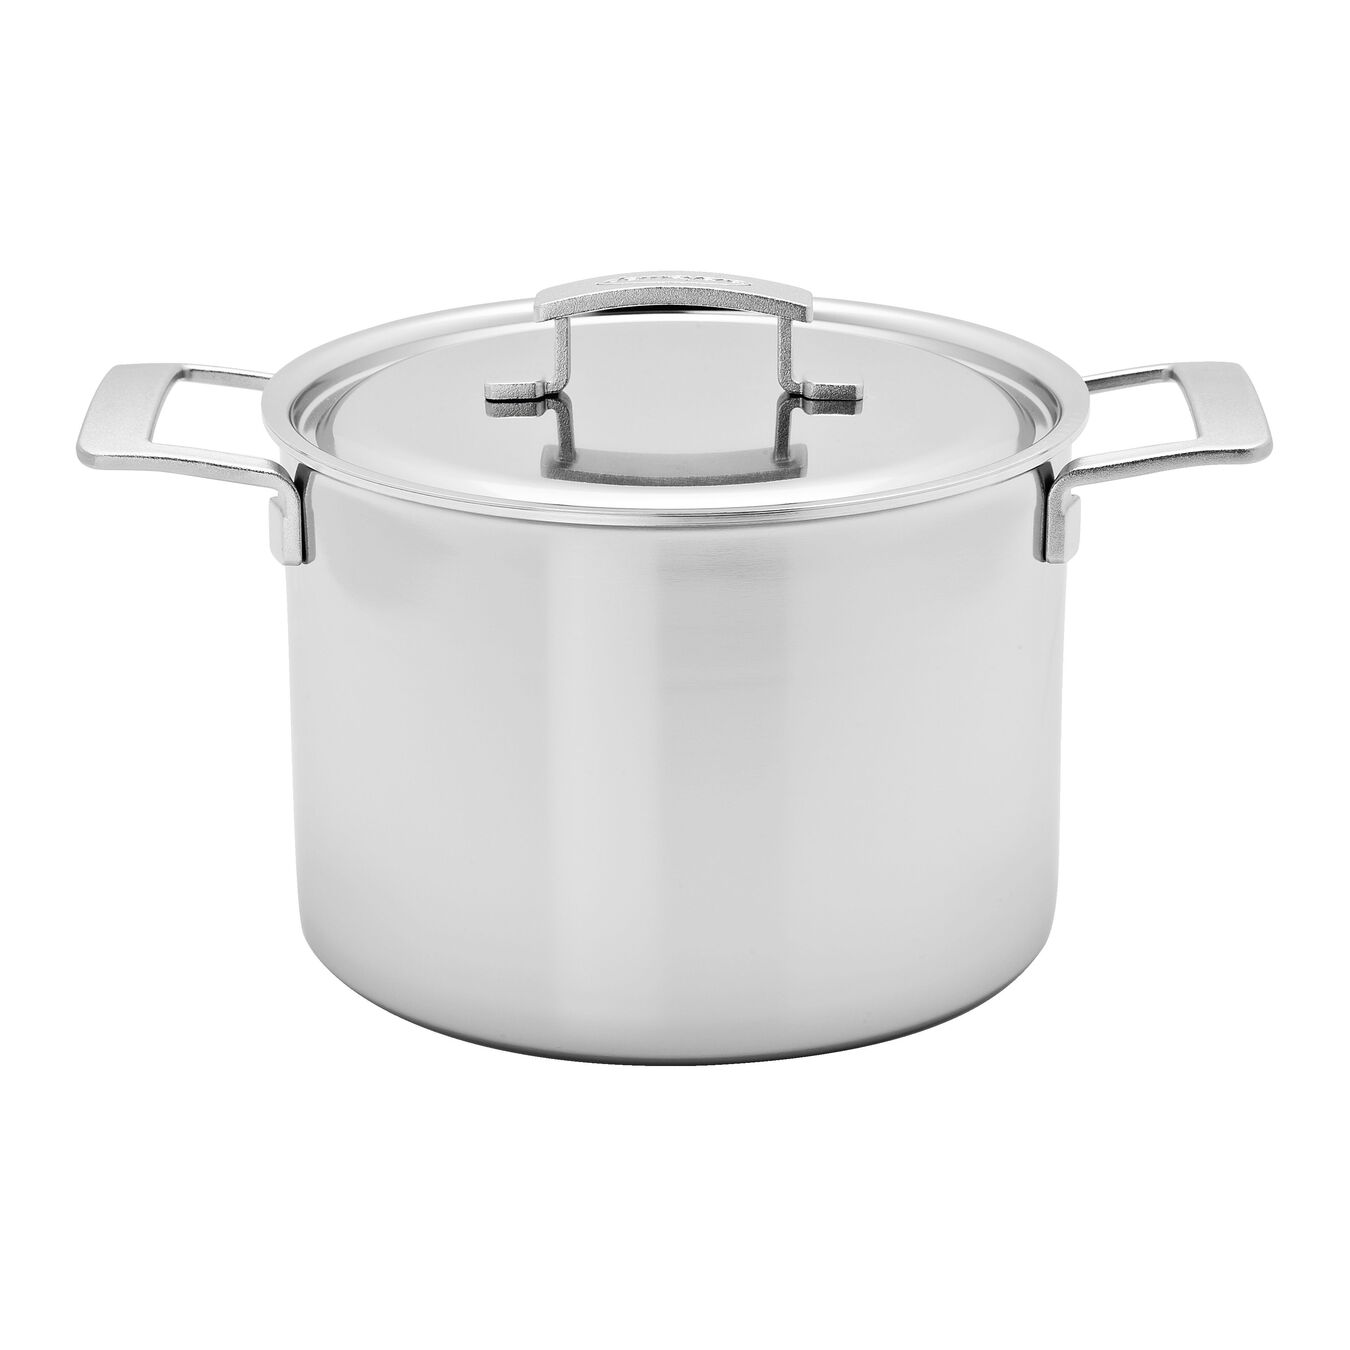 270.5-oz Stock pot with lid, 18/10 Stainless Steel ,,large 1